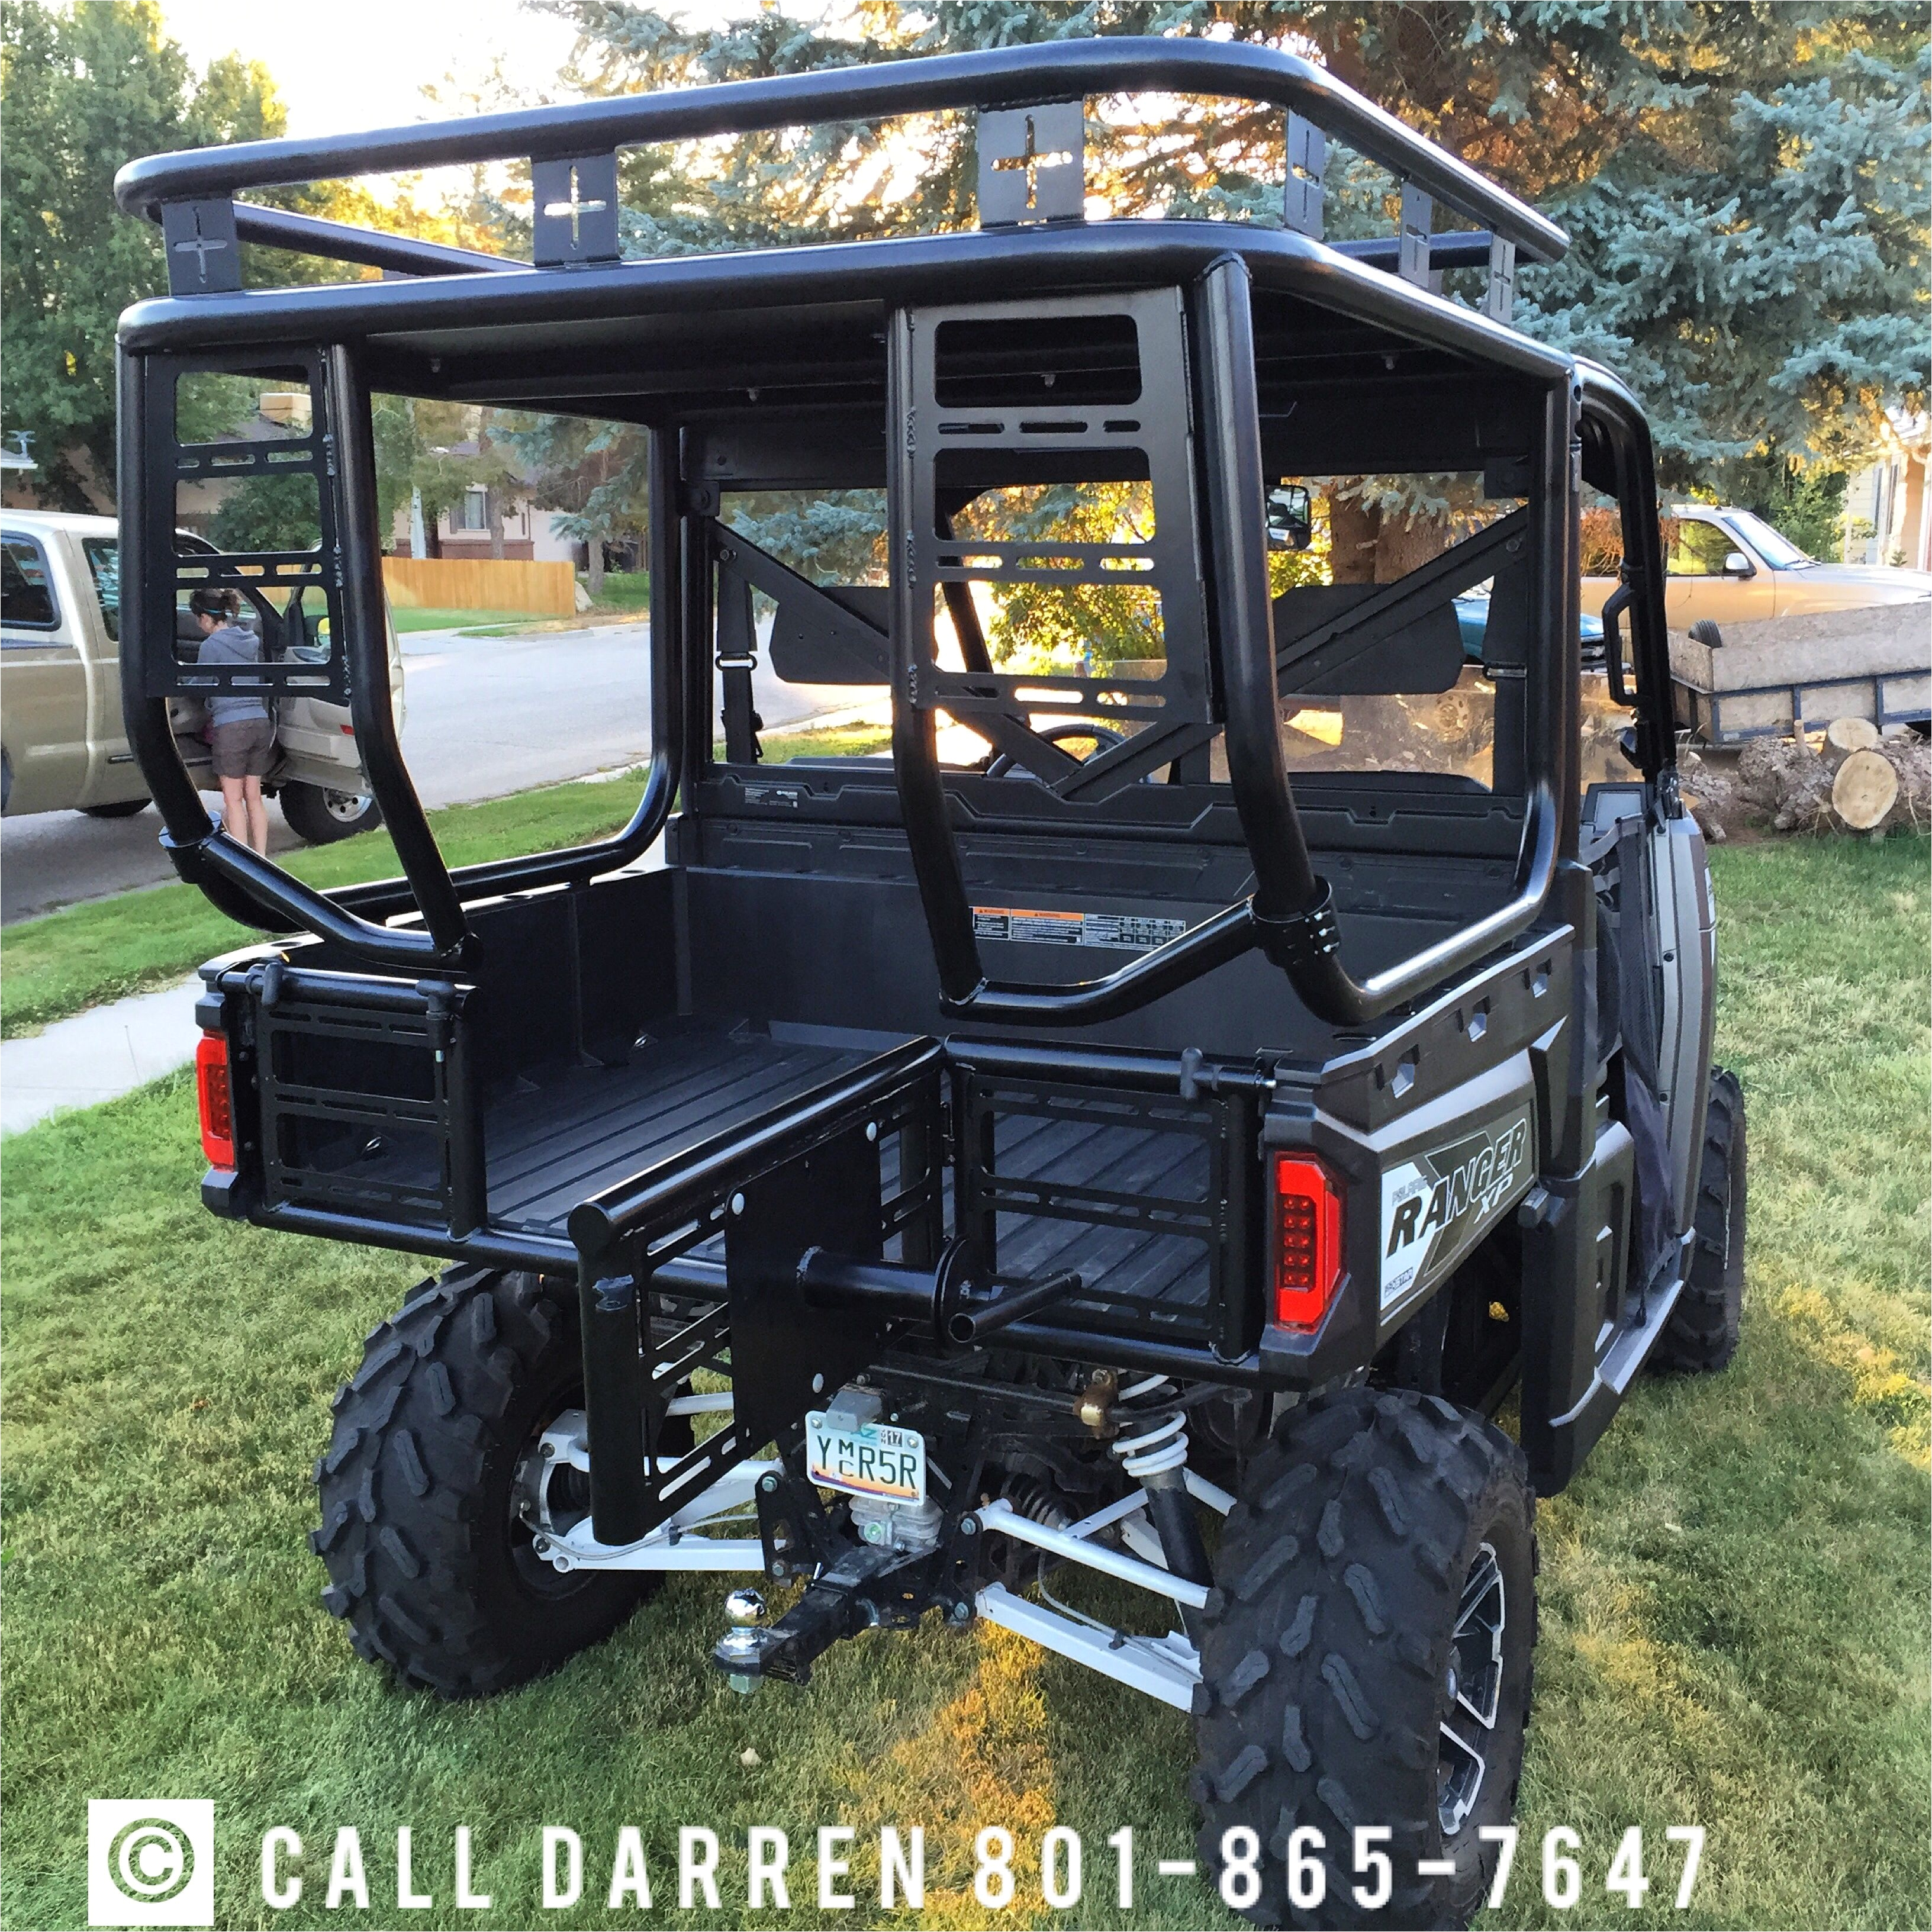 polaris polarisranger polarisrangerxp polarisranger900xp rollcage safarirack hunting fishing